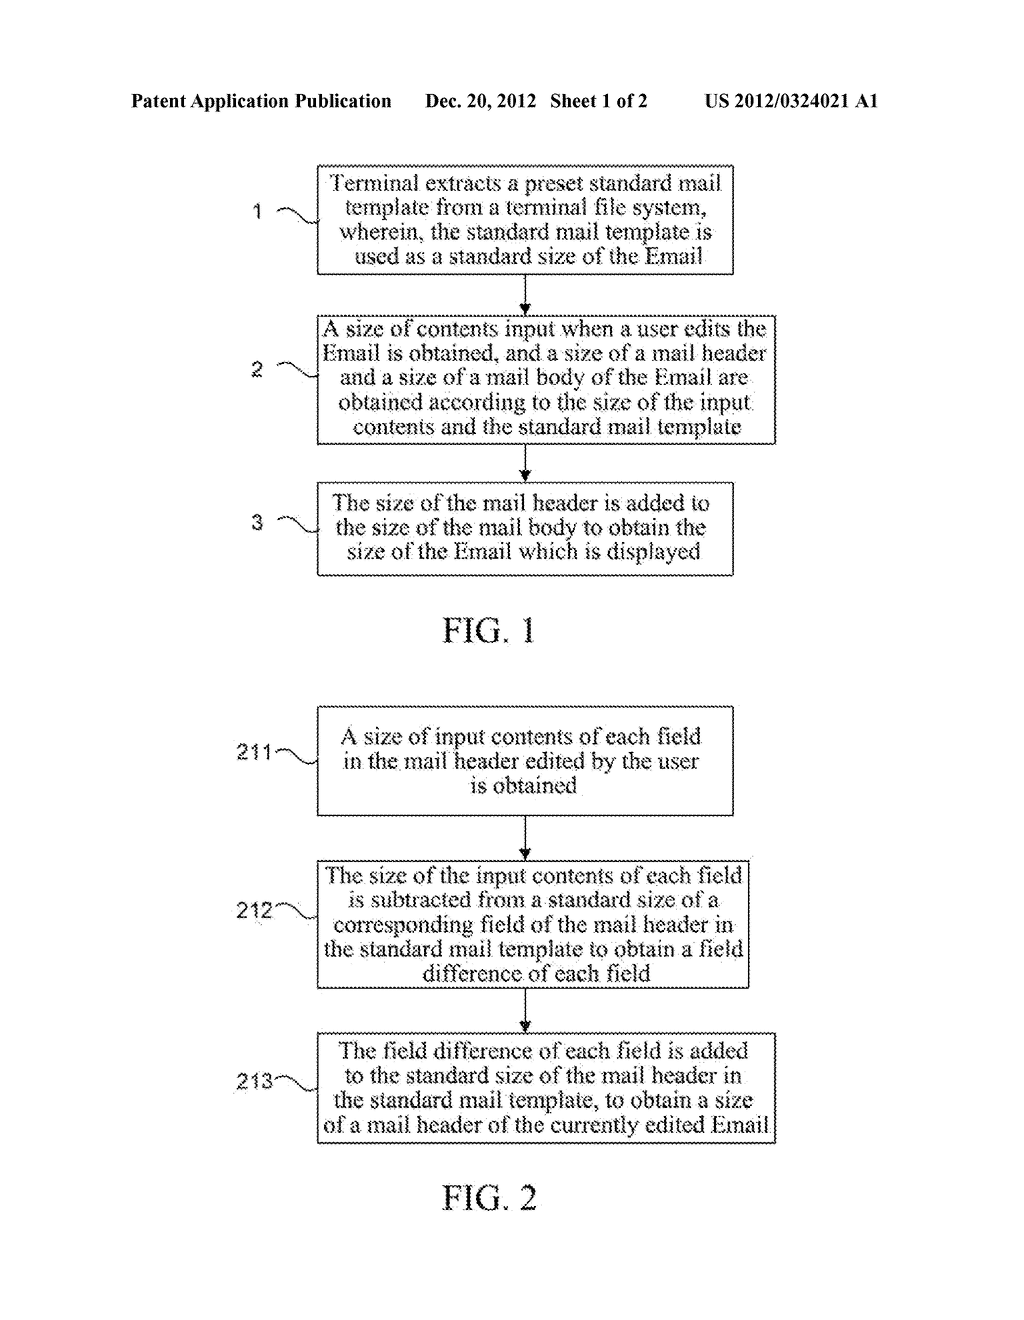 Method and Apparatus for Obtaining Size of Emails of Terminal - diagram, schematic, and image 02